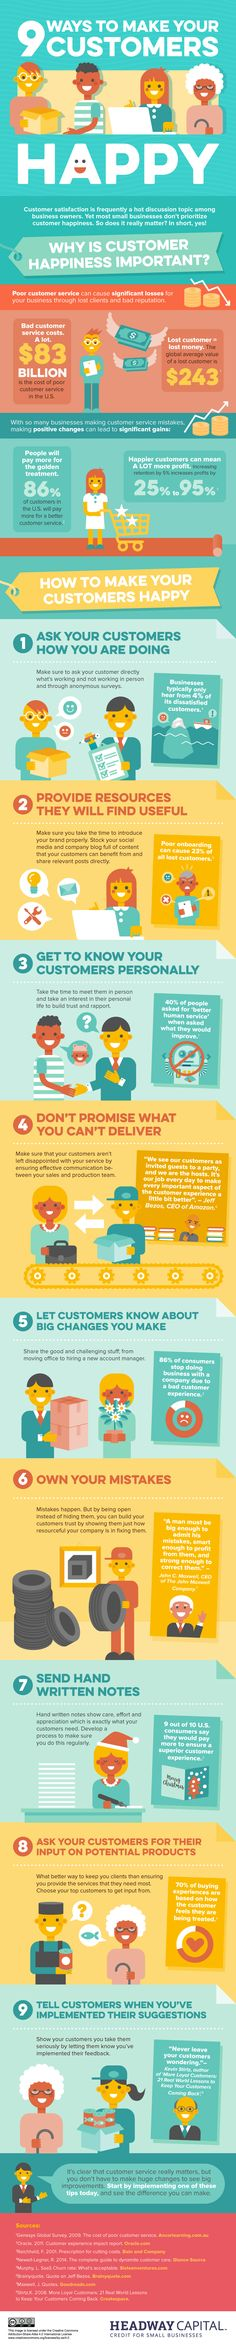 9 Ways to Make Your Customers Happy (Infographic)  - Happy customers are a core component of a healthy, profitable company.